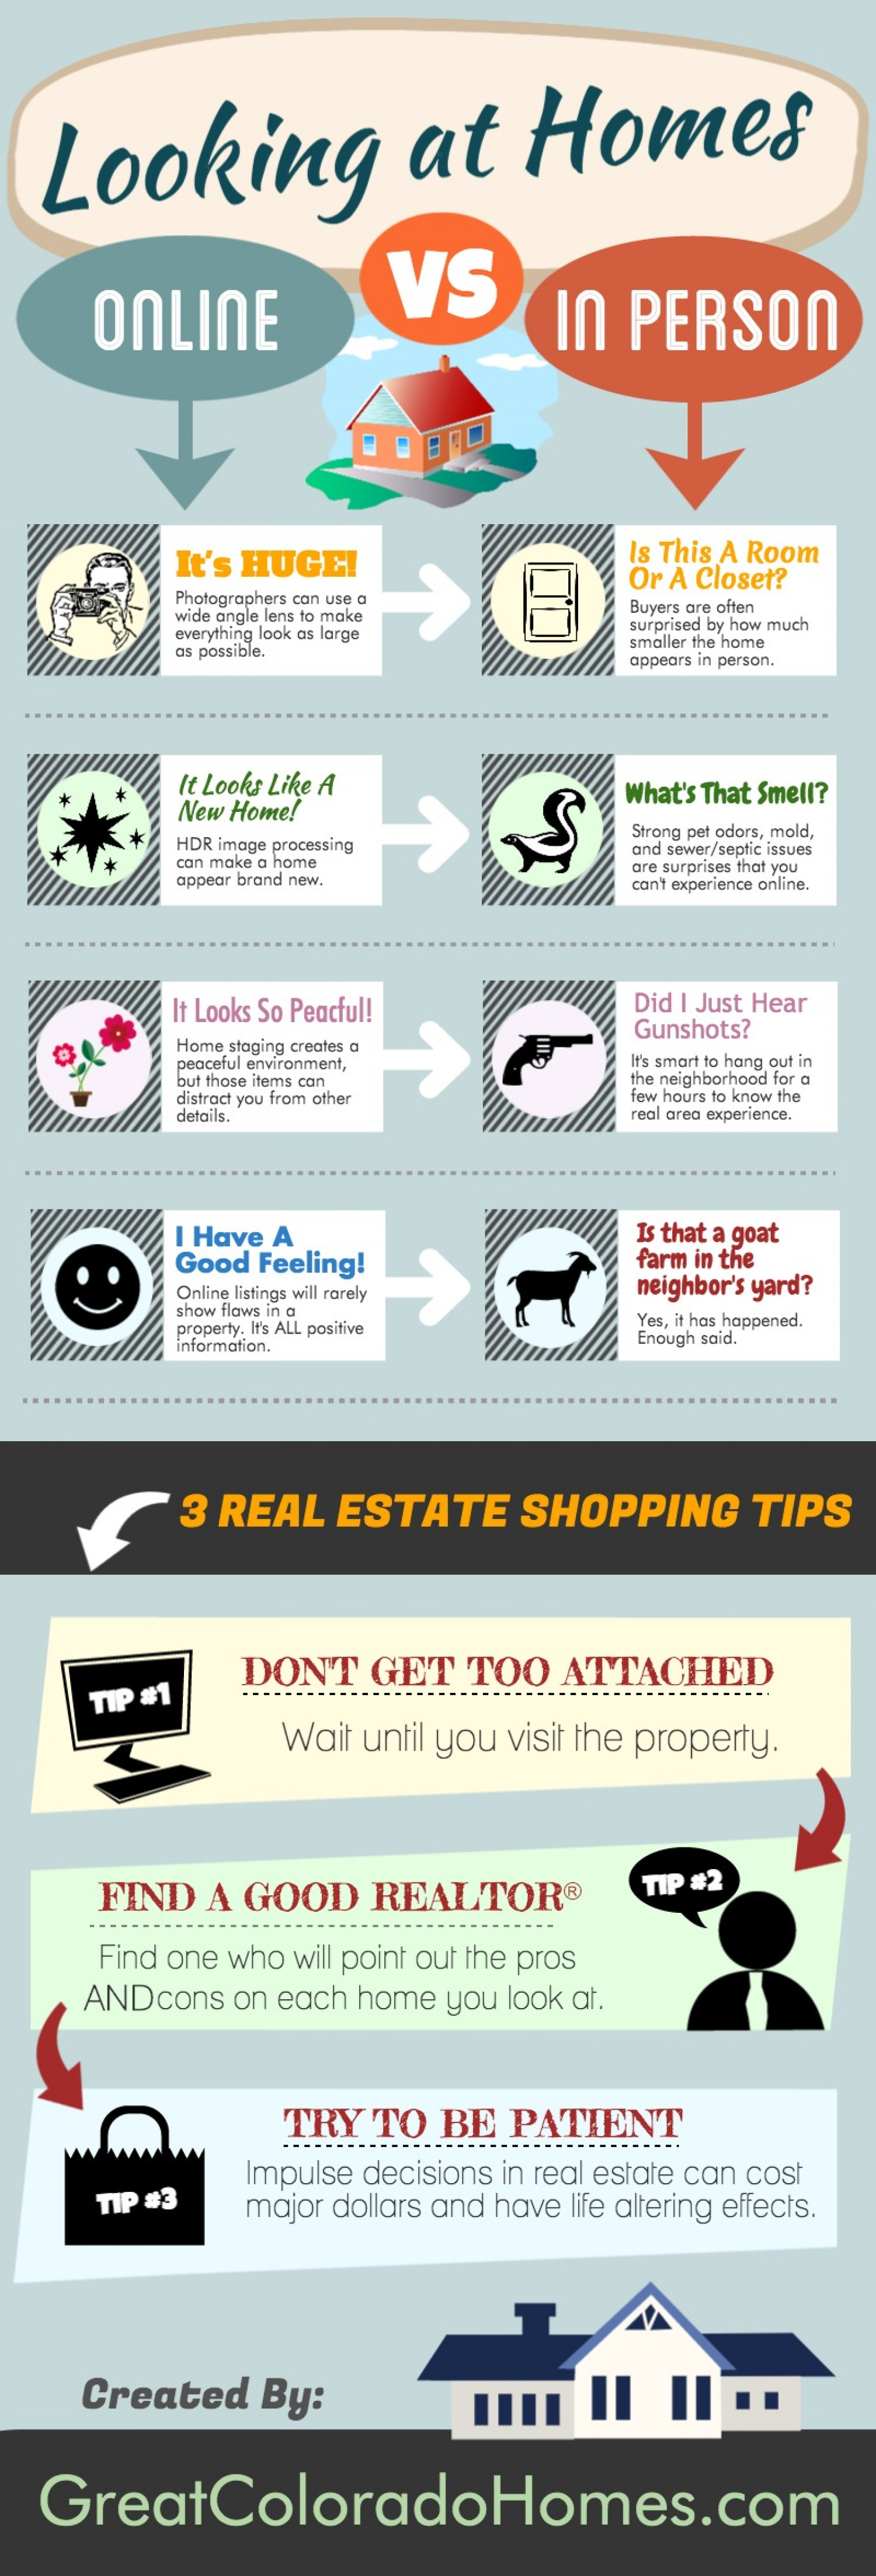 Looking at Homes Online Versus In Person Infographic